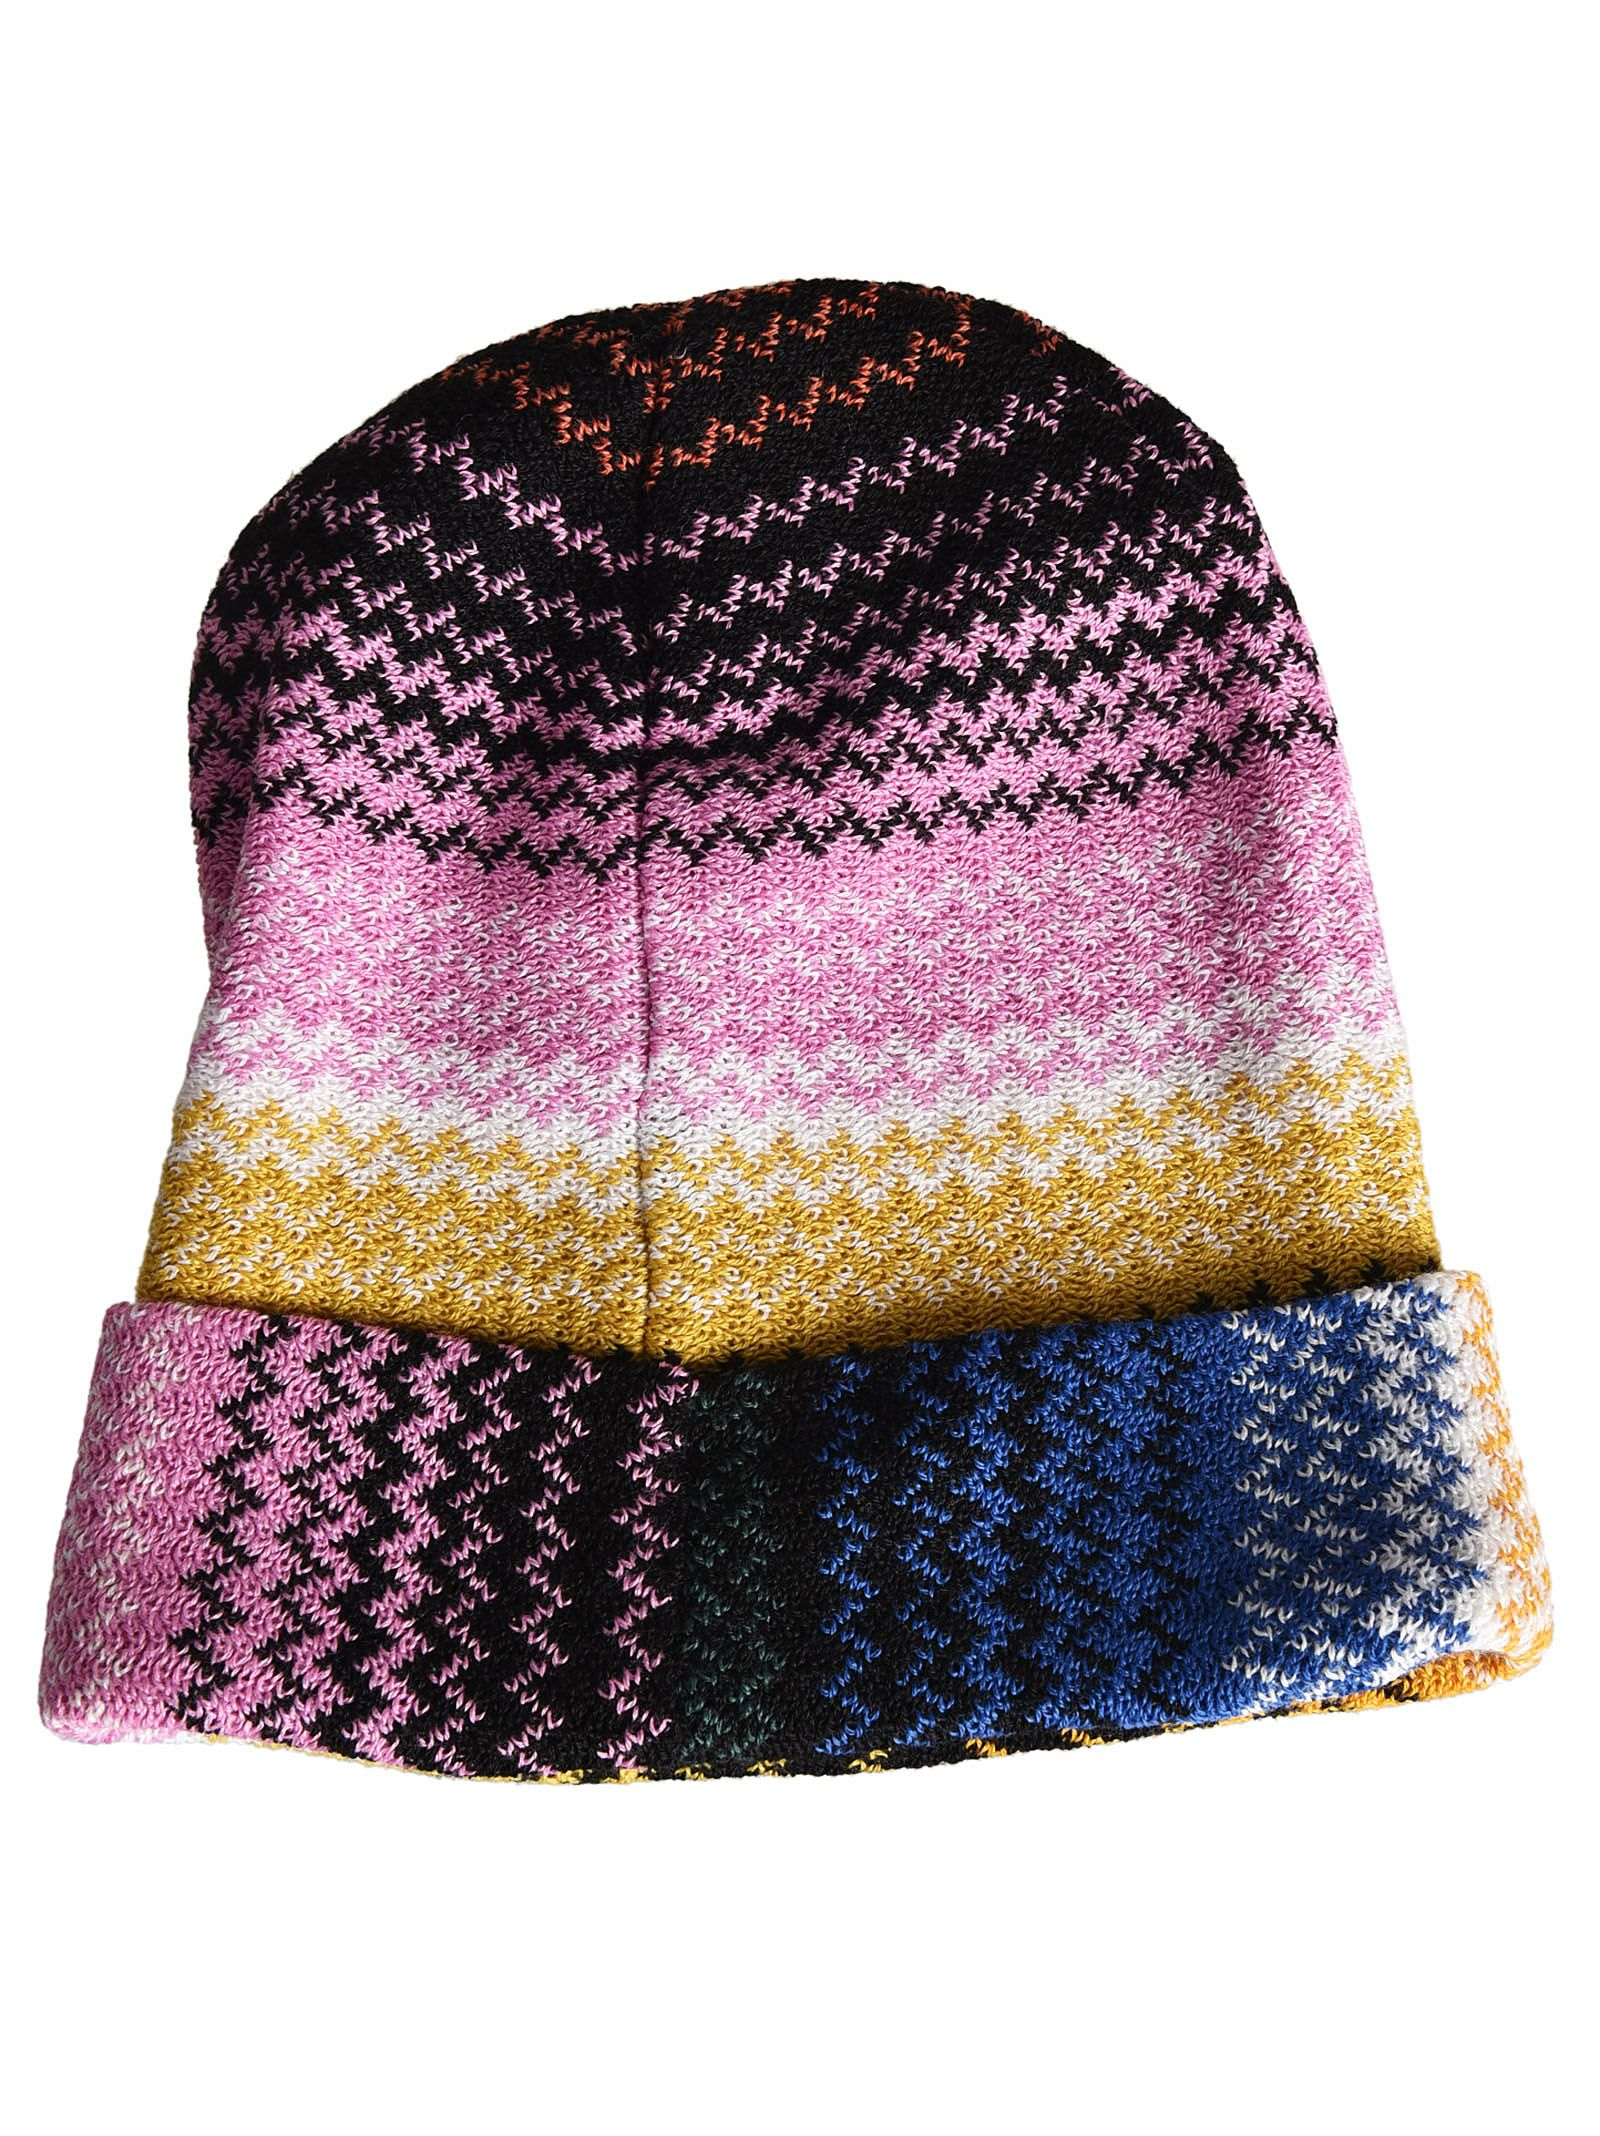 Missoni Zigzag Knitted Beanie - Multicolor Missoni Zigzag Knitted Beanie -  Multicolor ed8686335614